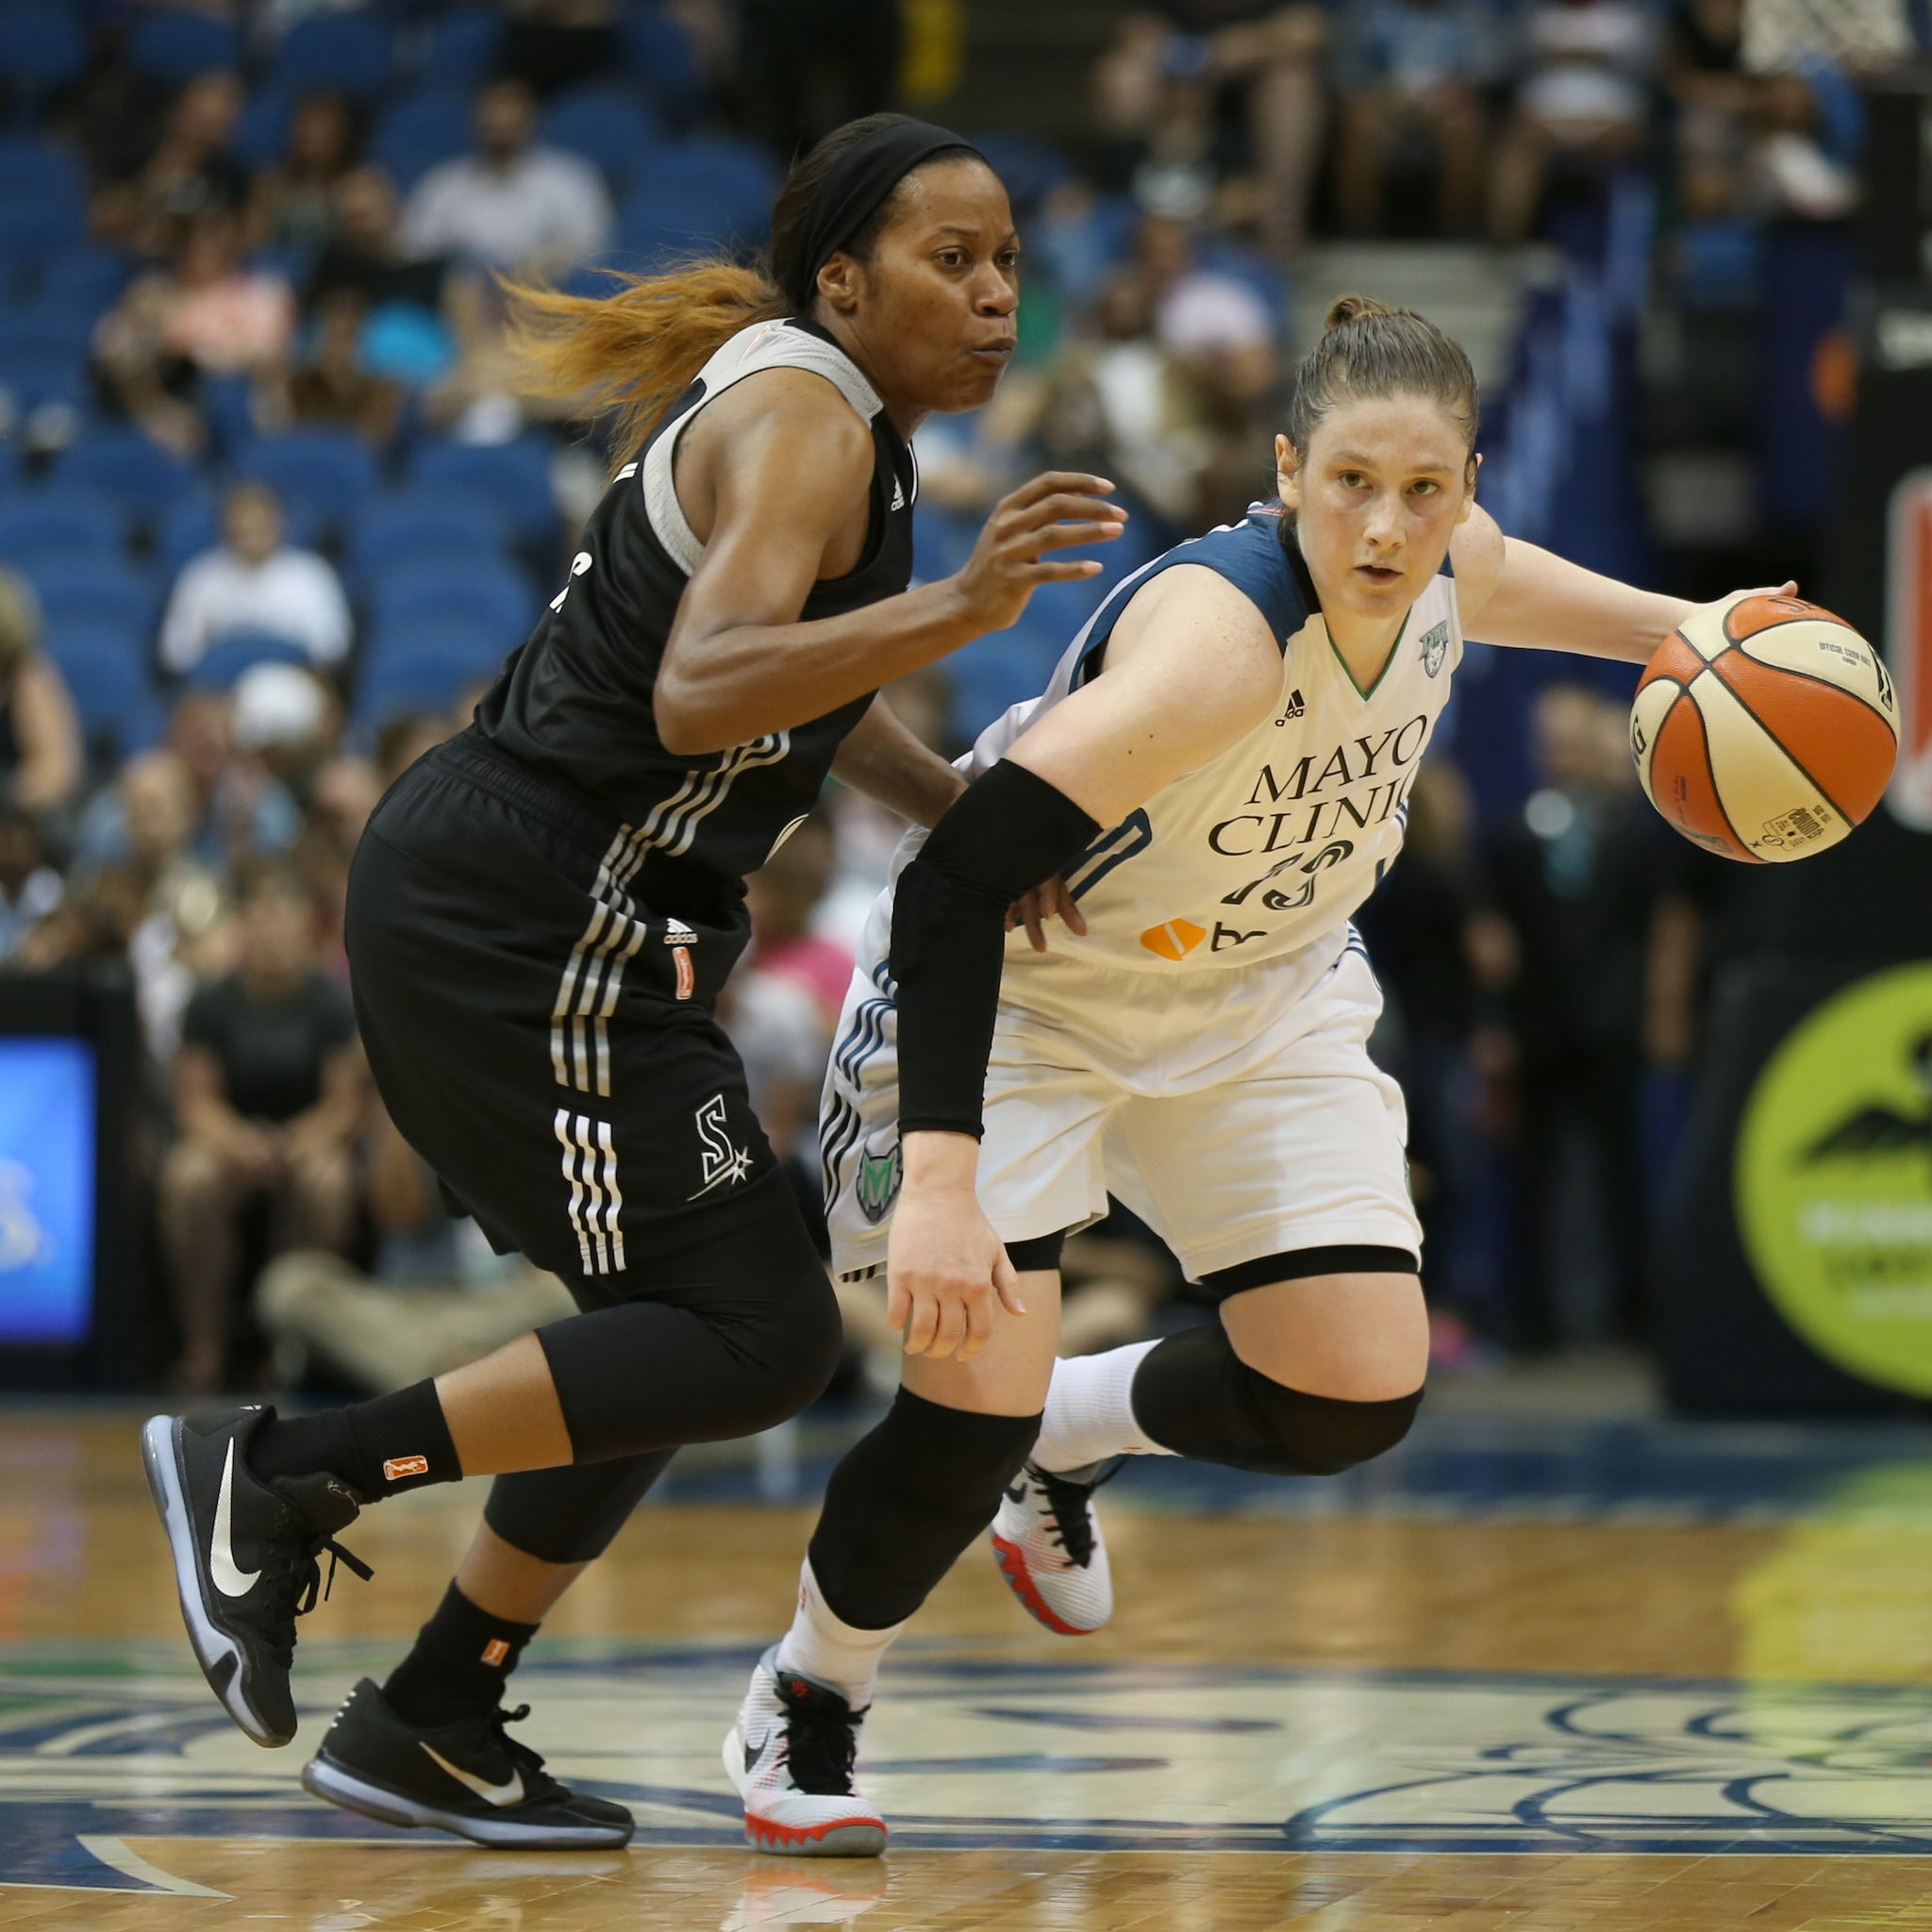 Lynx guard Lindsay Whalen had a solid game, finishing with seven points and nine assists. Whalen also became just the third player in WNBA history with 2,000+ assists tonight, joining guards Sue Bird and Ticha Penicheiro